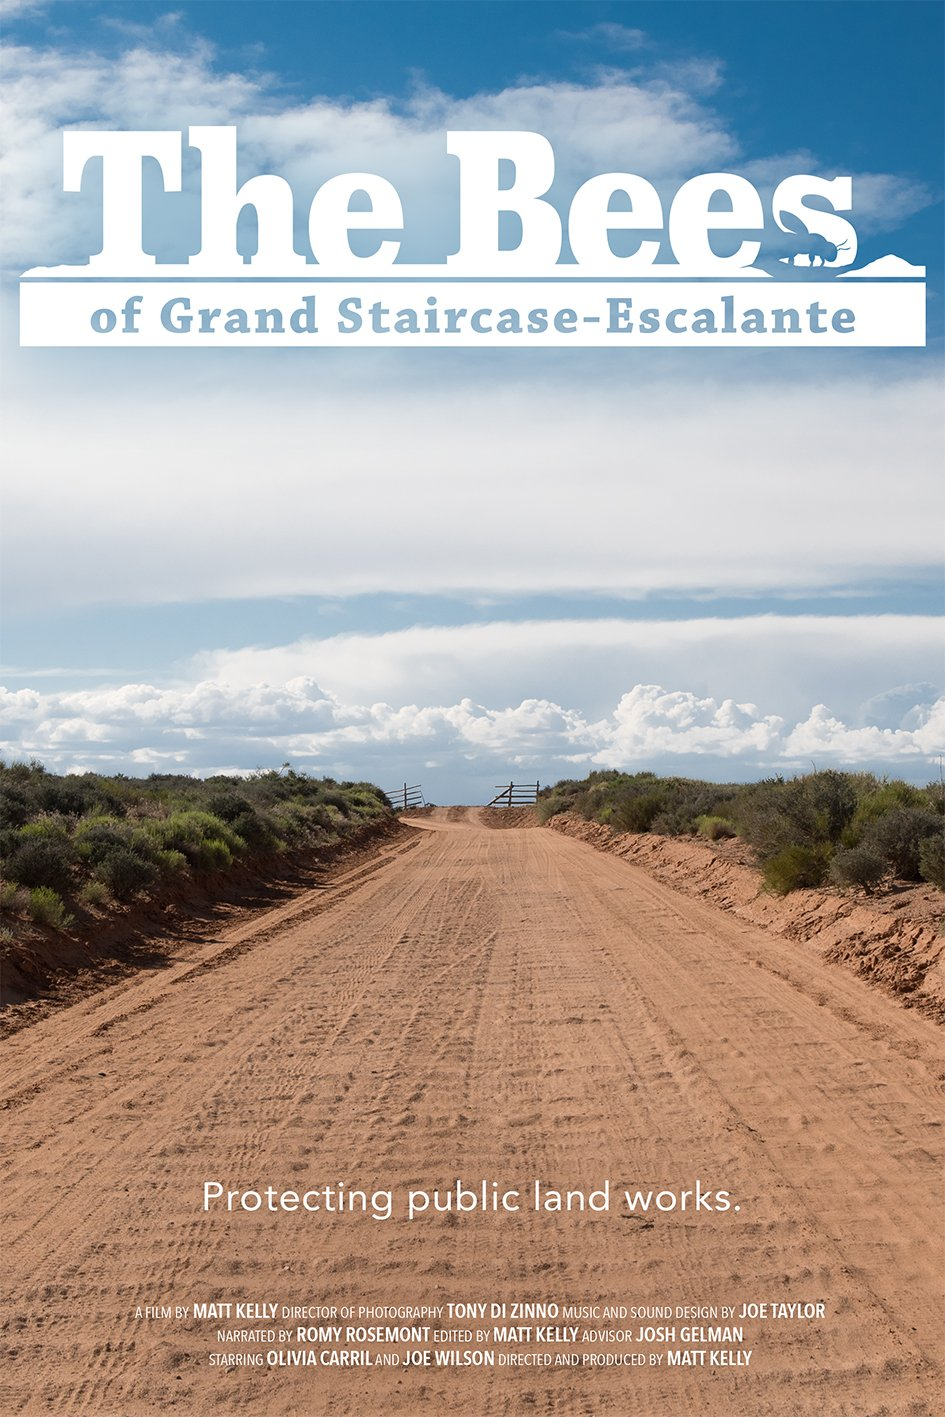 The Bees of Grand Staircase-Escalante poster of a road in the desert